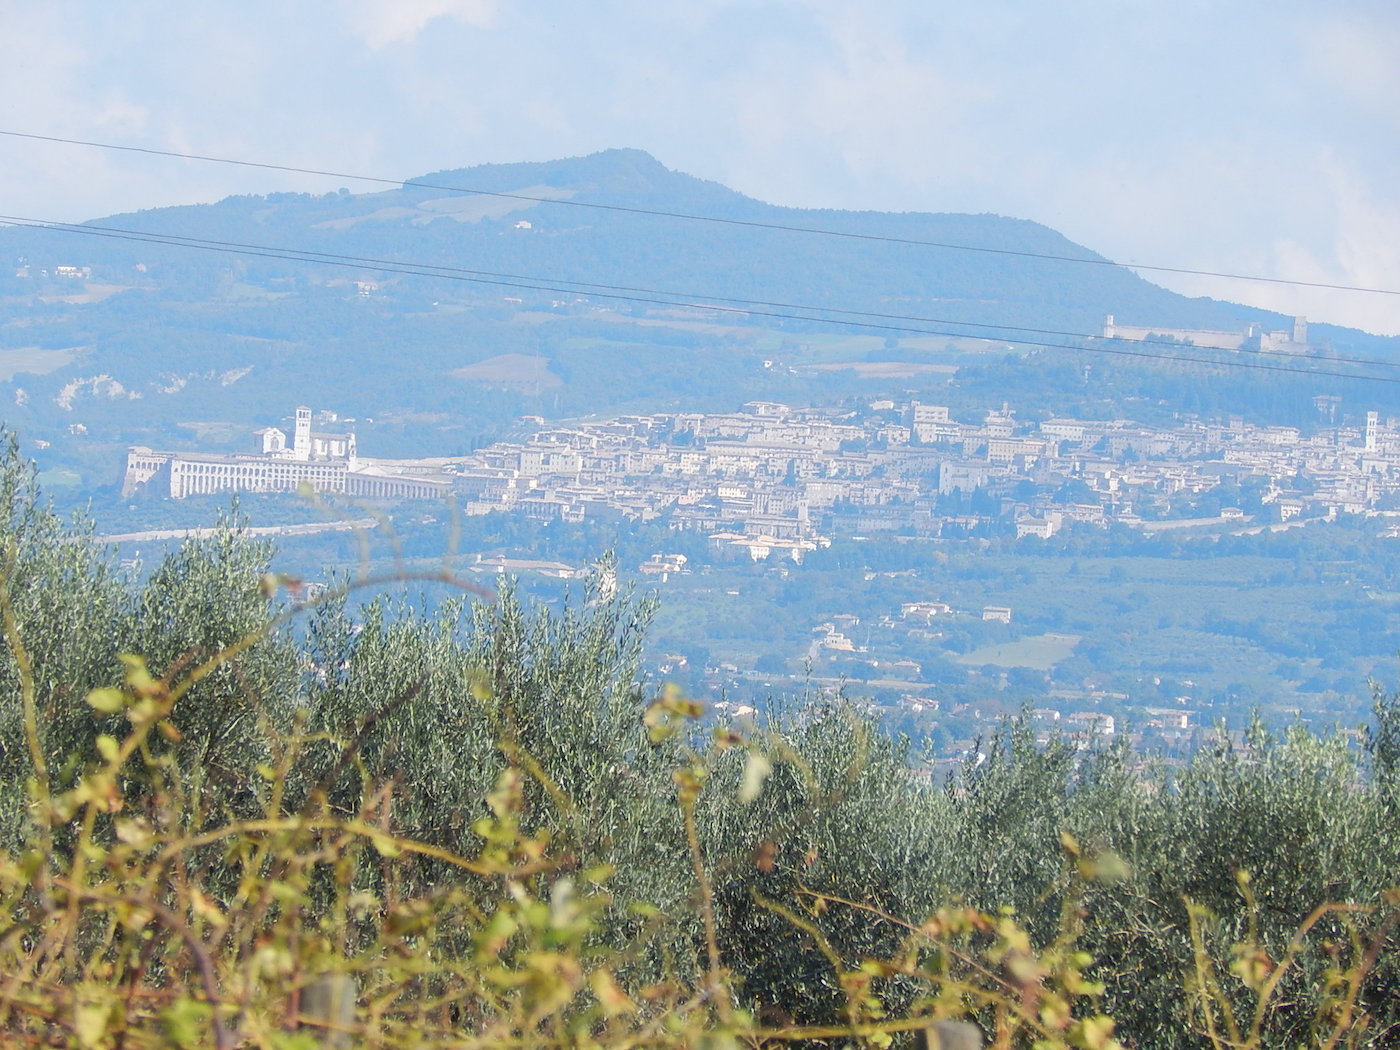 The Umbrian town of Assisi. PHOTO: TERRY DUARTE.